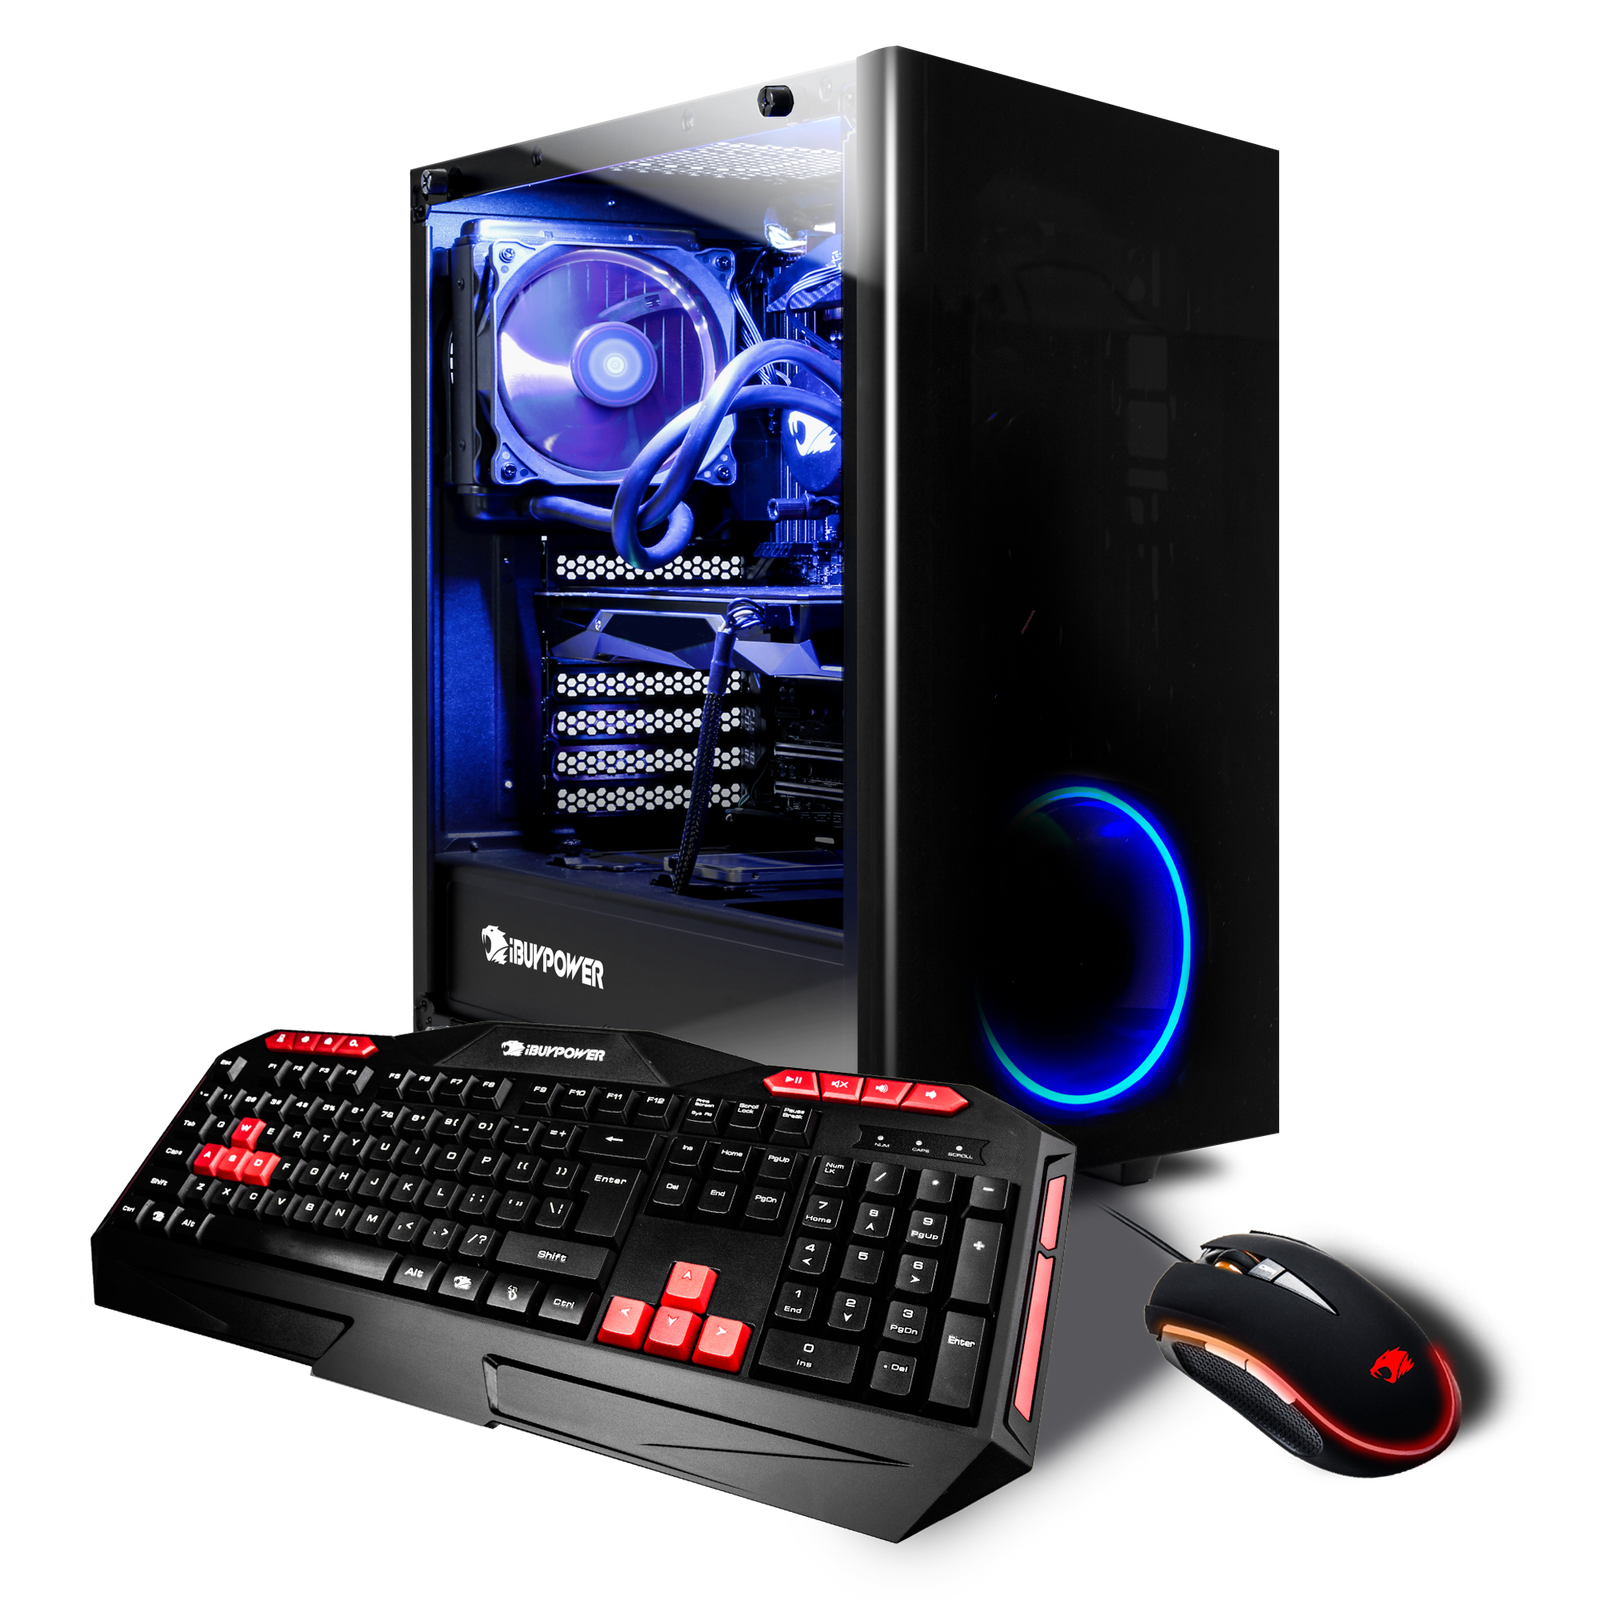 iBUYPOWER Extreme Gaming Desktop Intel Core i7 8700K 16GB Memory 1TB HDD 240GB